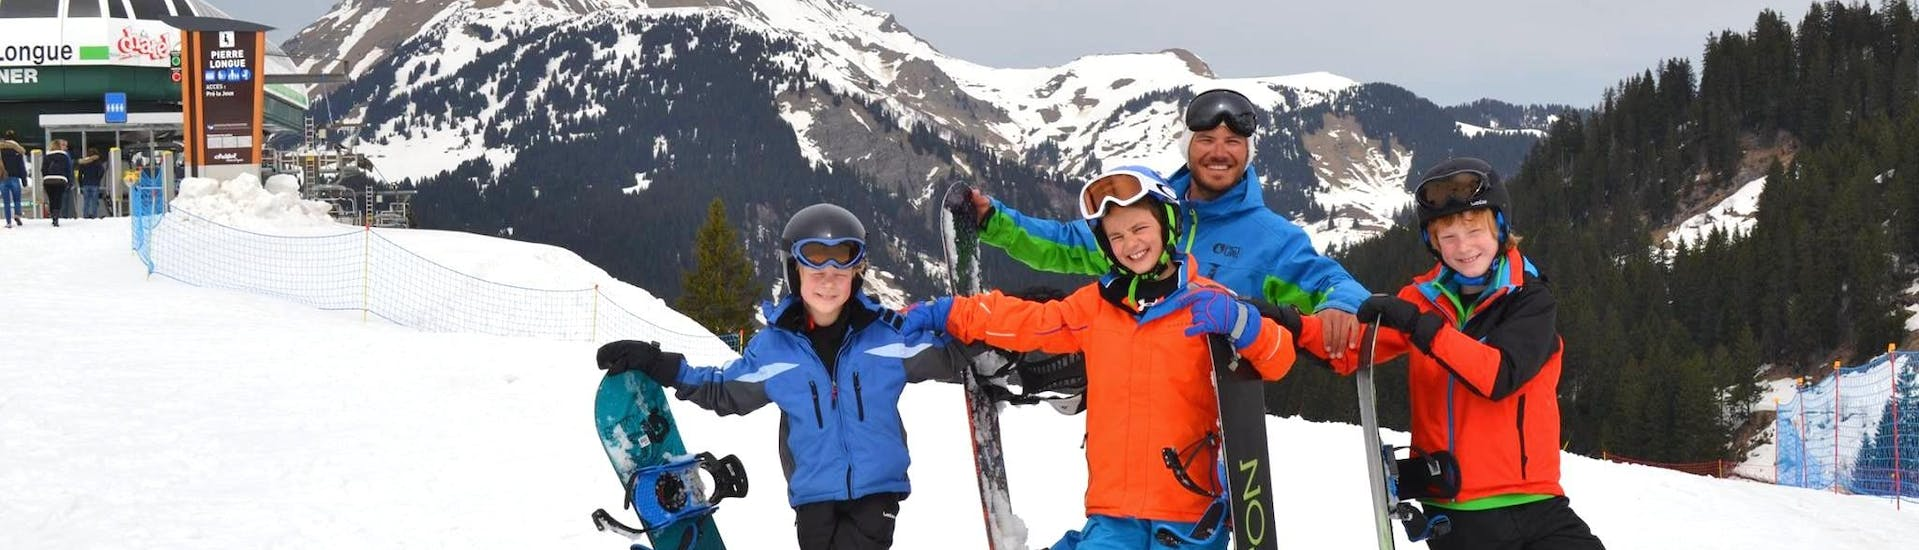 snowboarding-lessons-from-10-years-all-levels-esi-chatel-hero